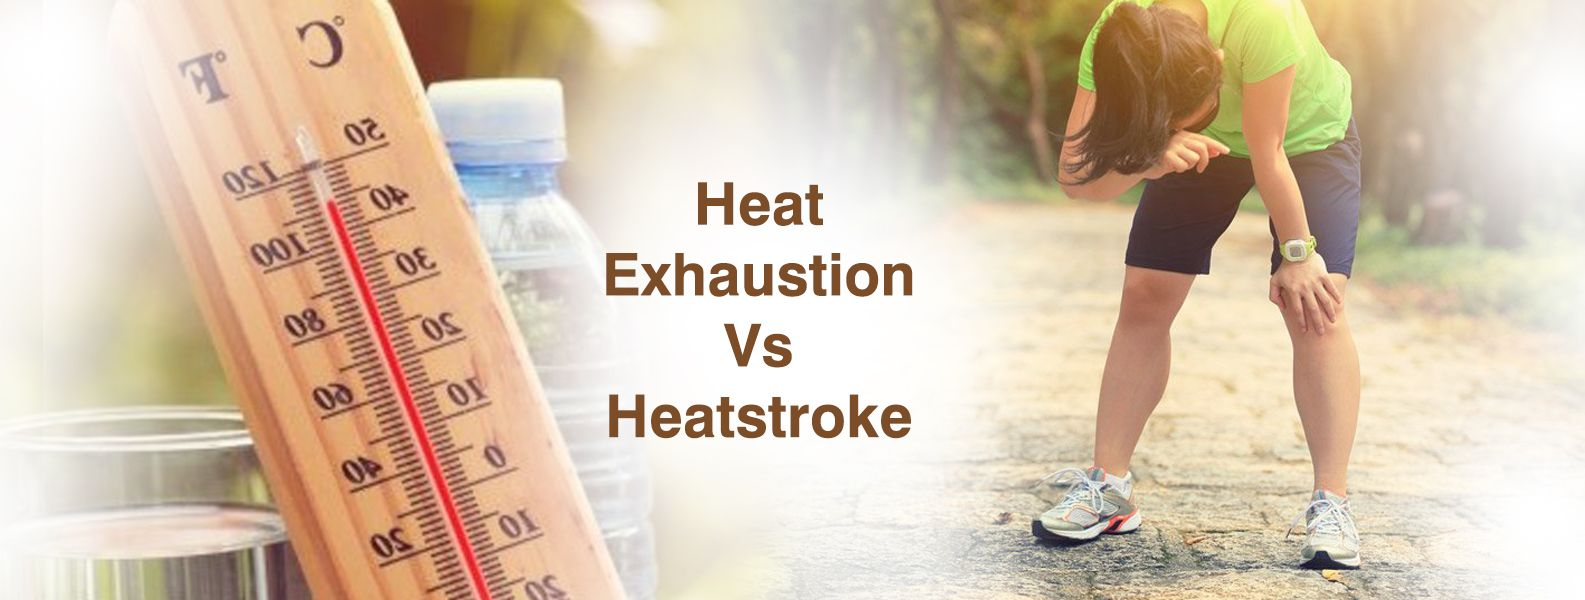 HEAT EXHAUSTION VS HEATSTROKE: WHAT ARE THE WARNING SIGNS AND HOW SHOULD YOU REACT